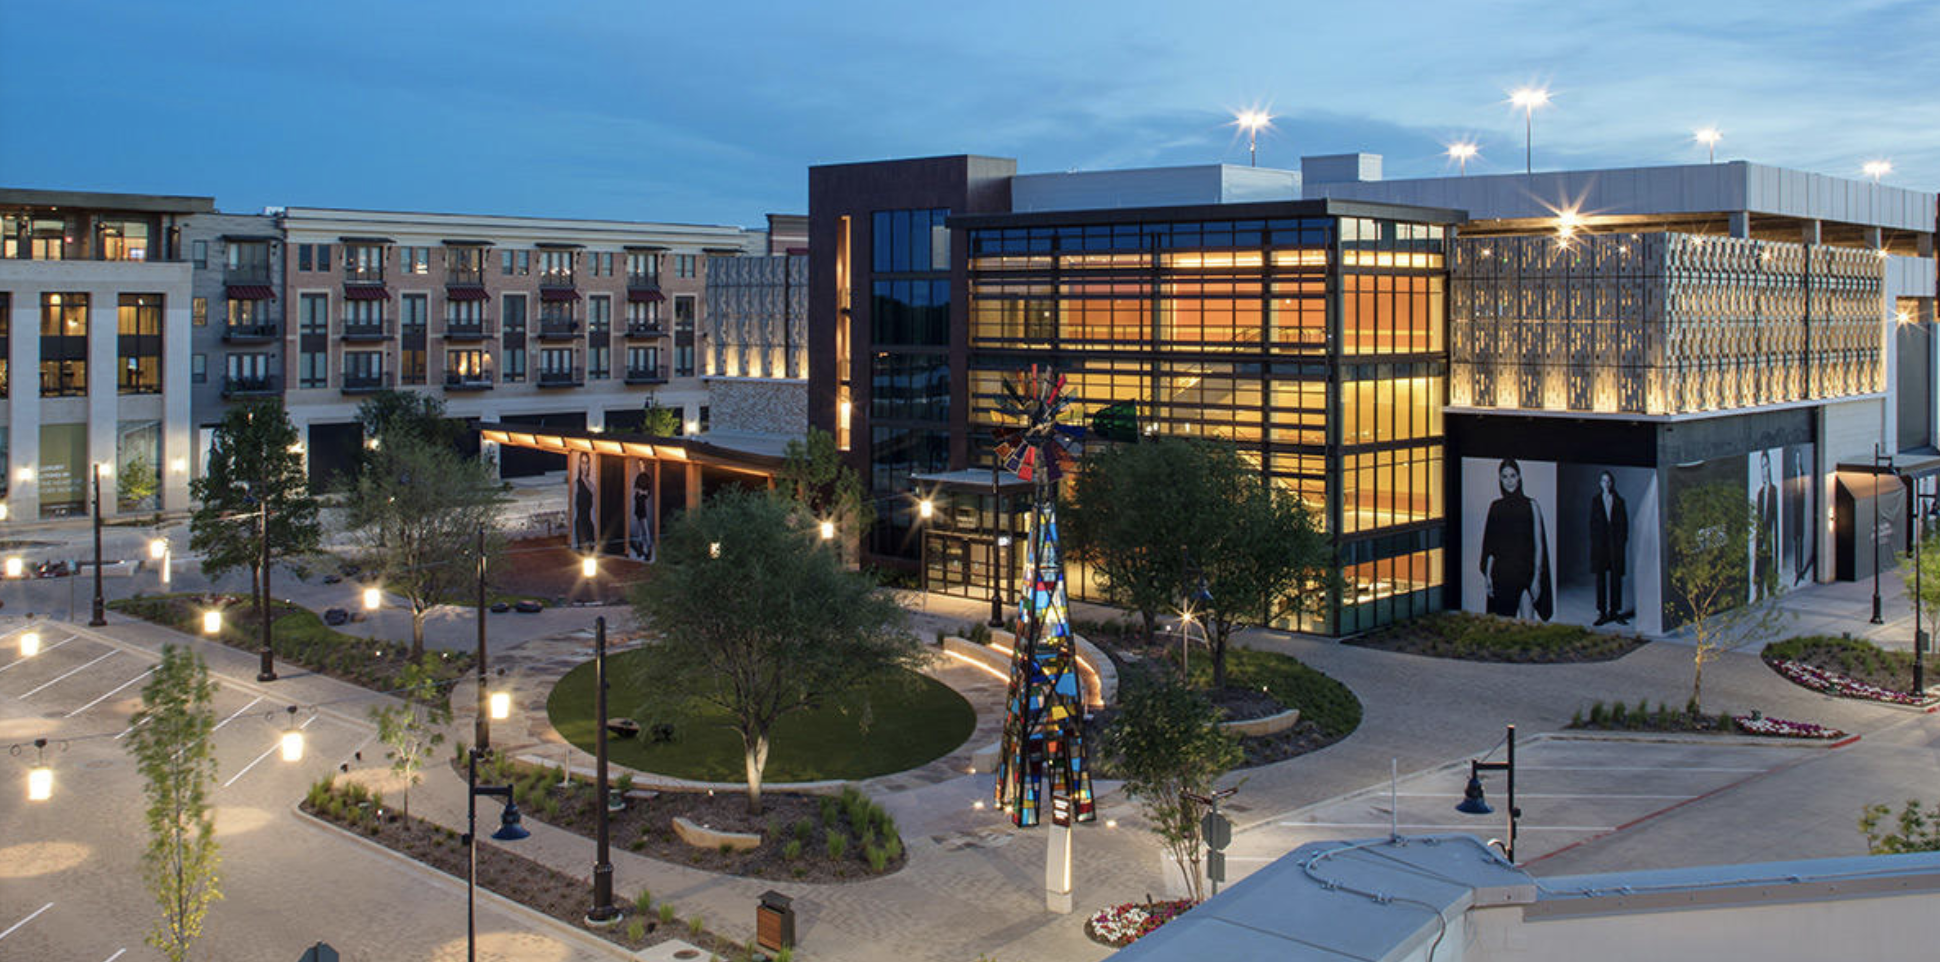 Clearfork - Clearfork is Fort Worth's lifestyle destination and home to premiere shops, restaurants, and entertainment. Clearfork is the perfect spot if you're wanting a modern and bright look in the background of your photographs.